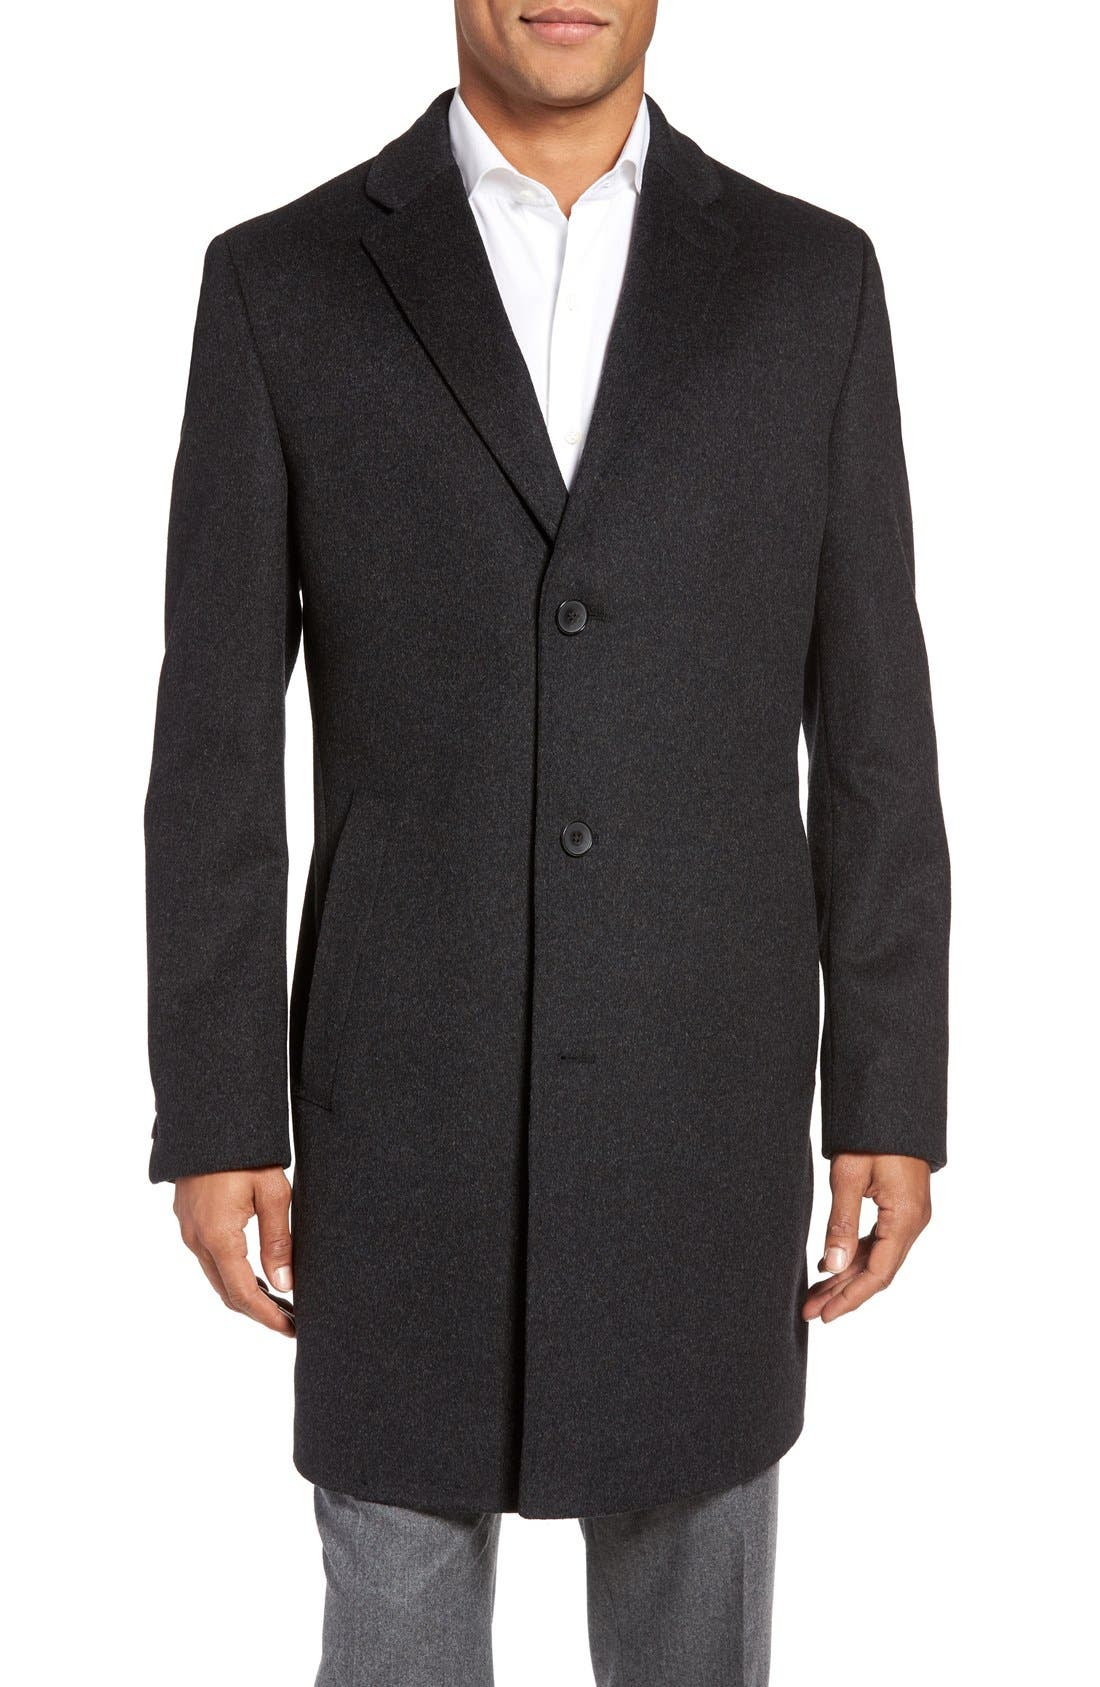 BOSS The Stratus Wool & Cashmere Overcoat,                         Main,                         color, 010